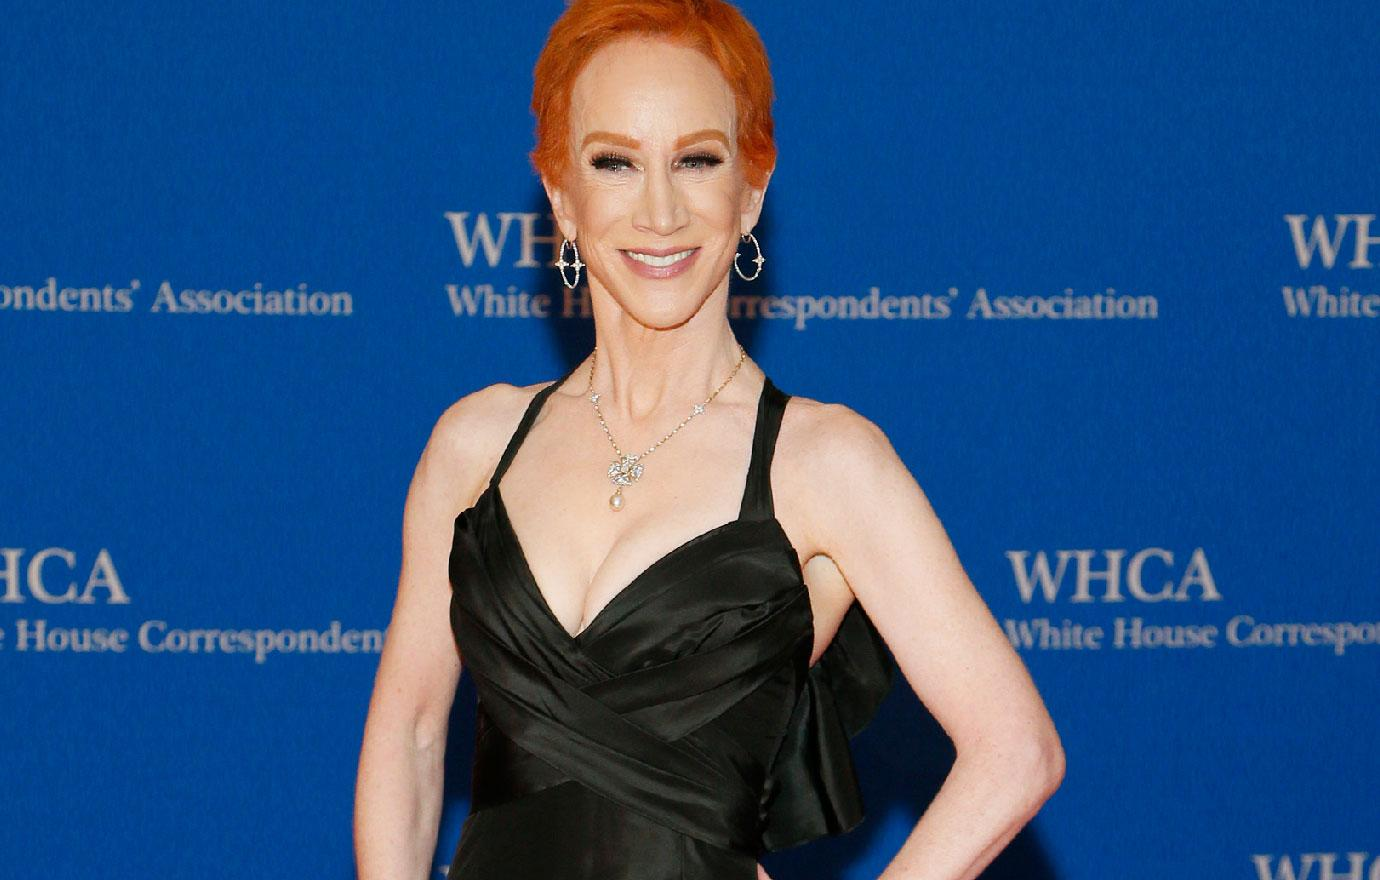 Kathy Griffin White House Correspondence Dinner Appearance